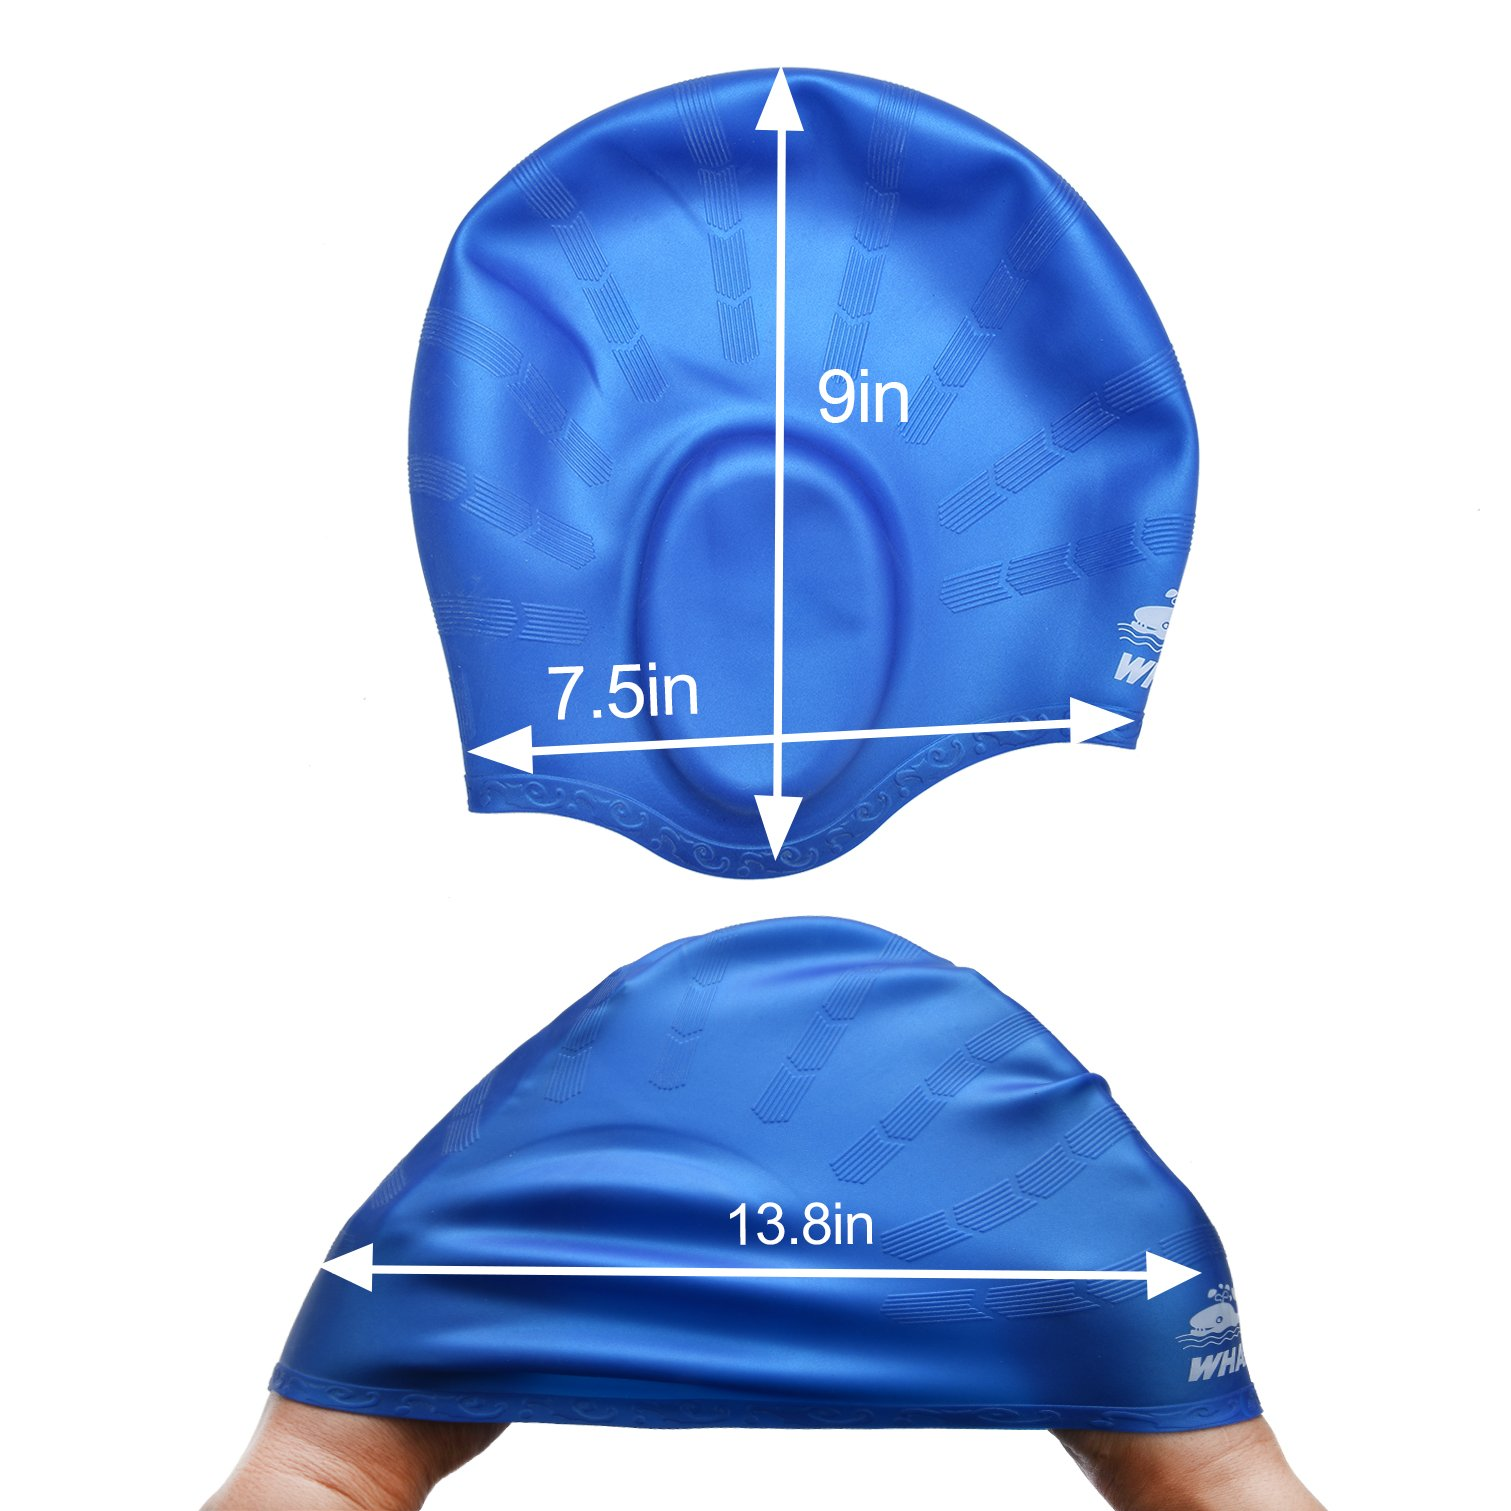 Cover Ears Swim Caps for Long Hair 100% Silicone Swimming Hat for Unisex Adult KIds Reduce Water Intake Makes Your Hair Clean(blue)